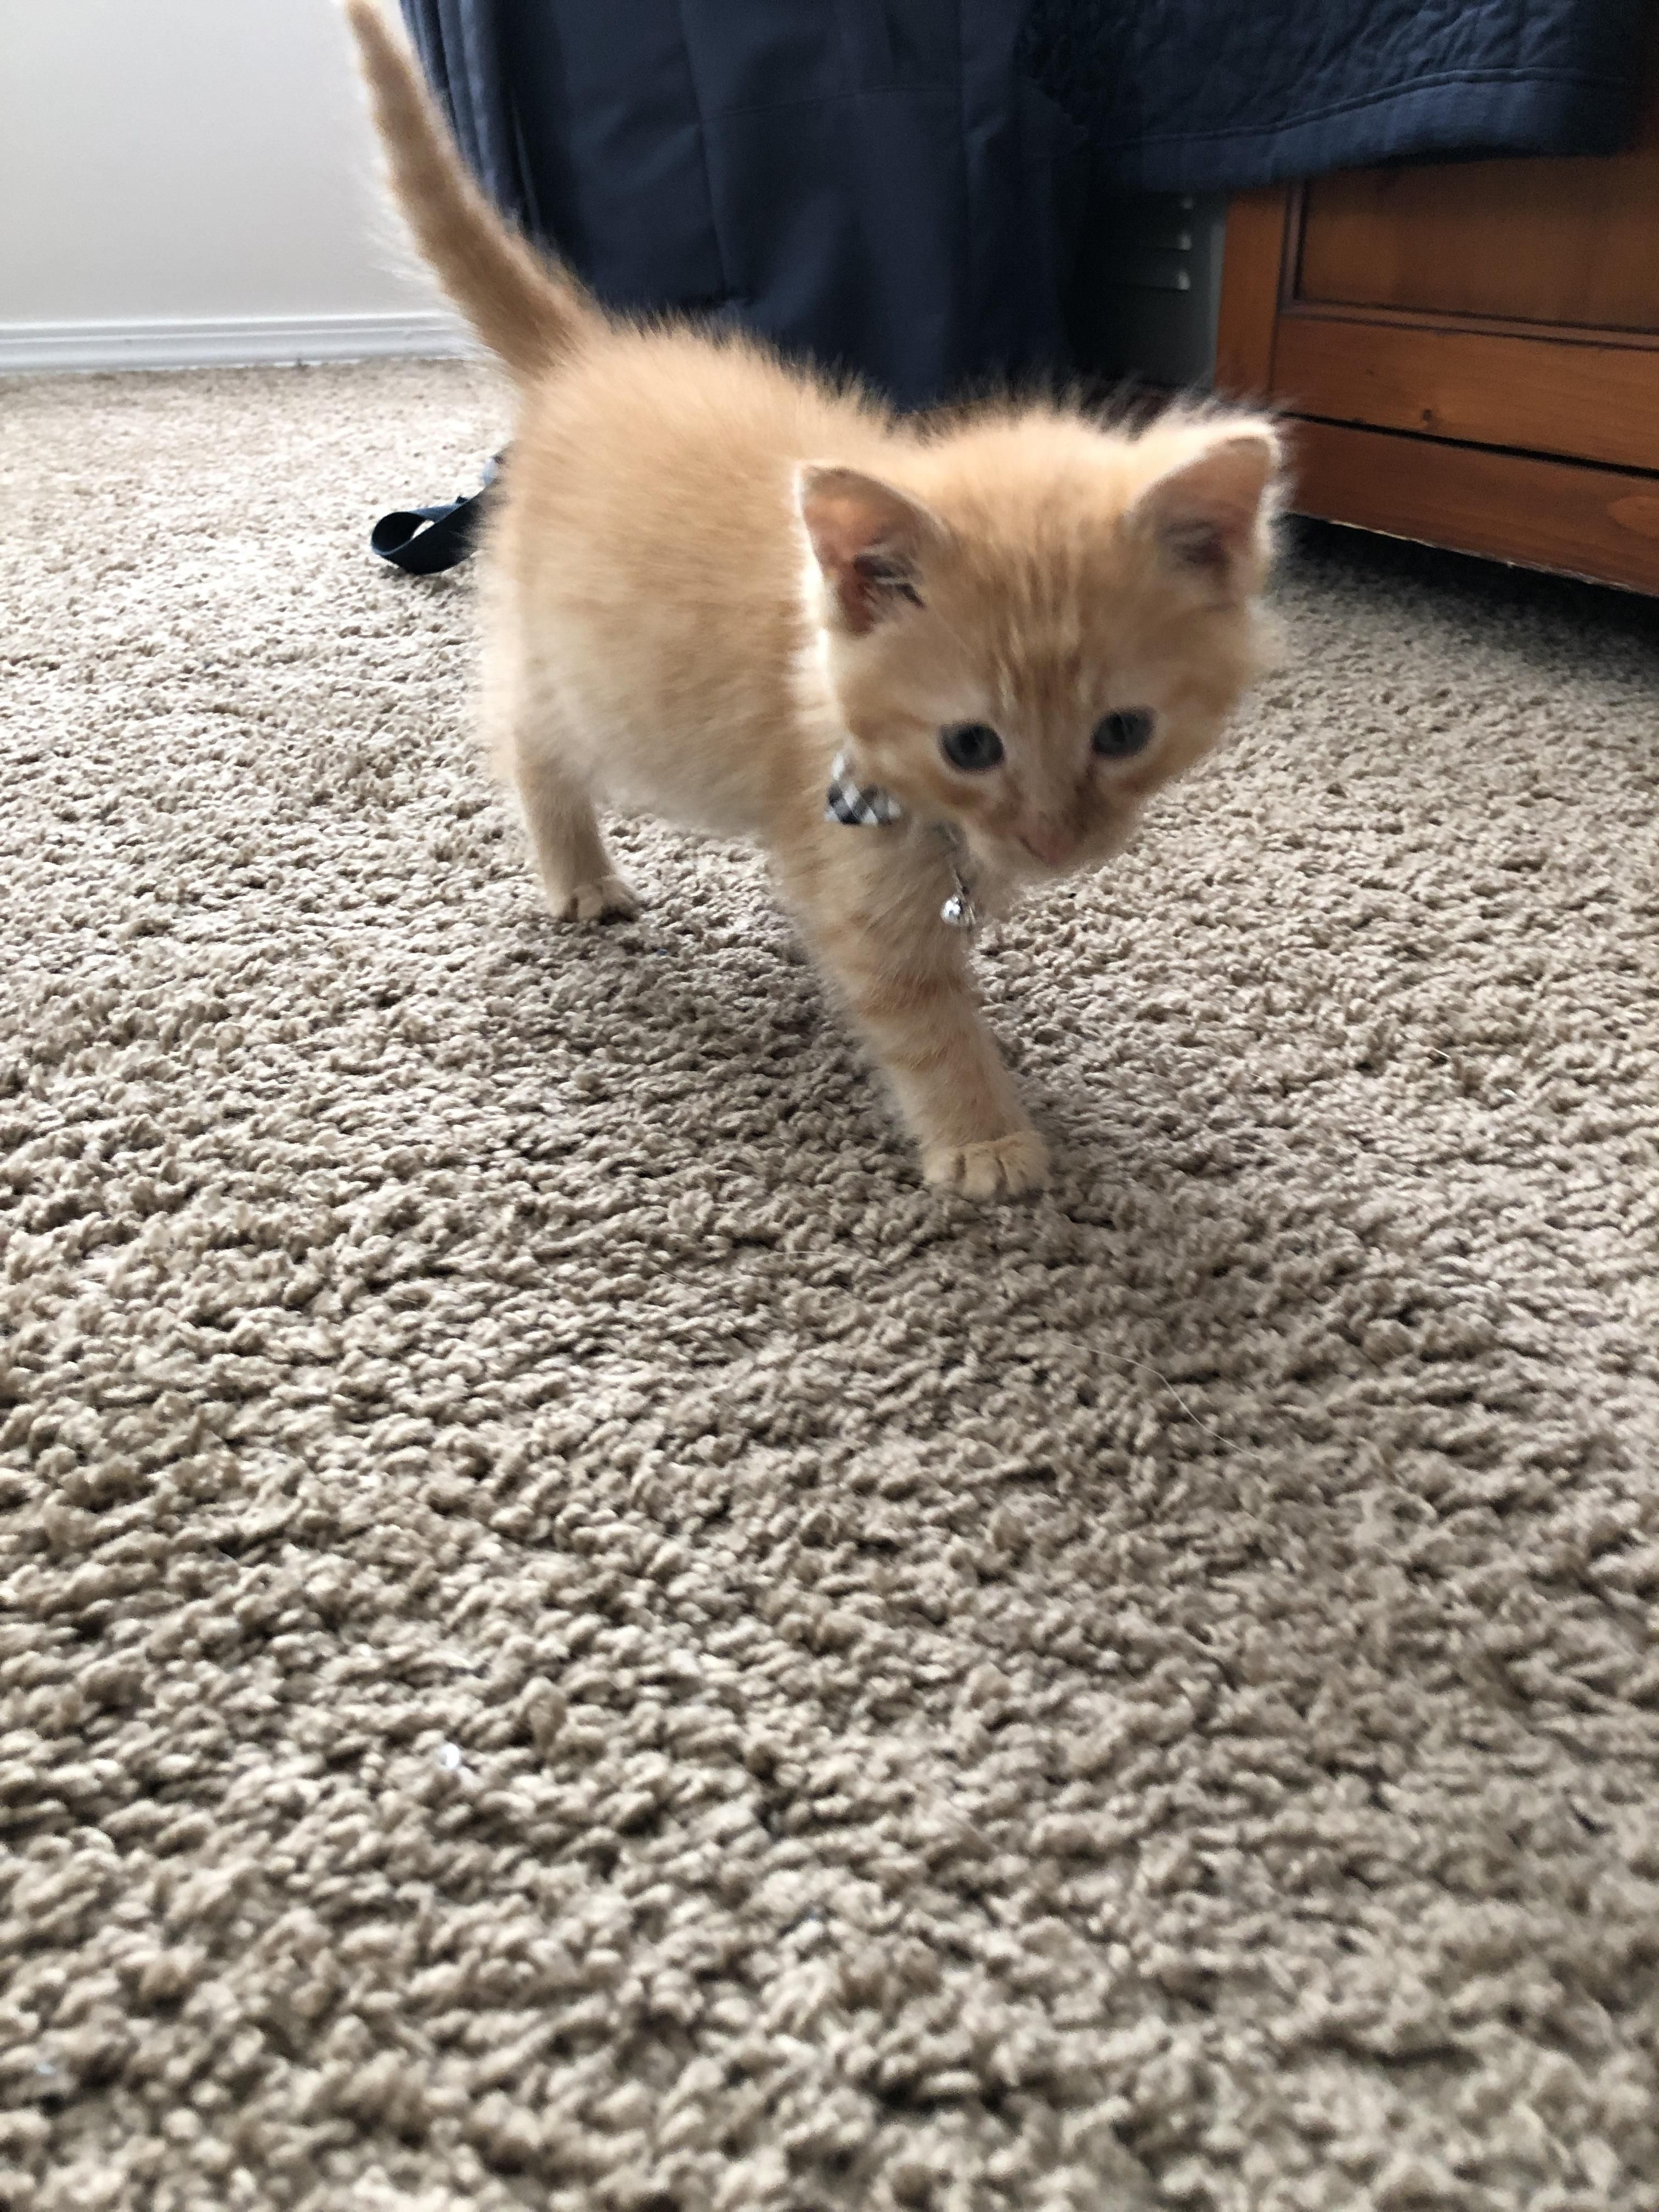 Newest Addition To The Family I Rescued This Little Kitty His Name Is Yam Cute Cats And Dogs Funny Cats And Dogs Kittens And Puppies